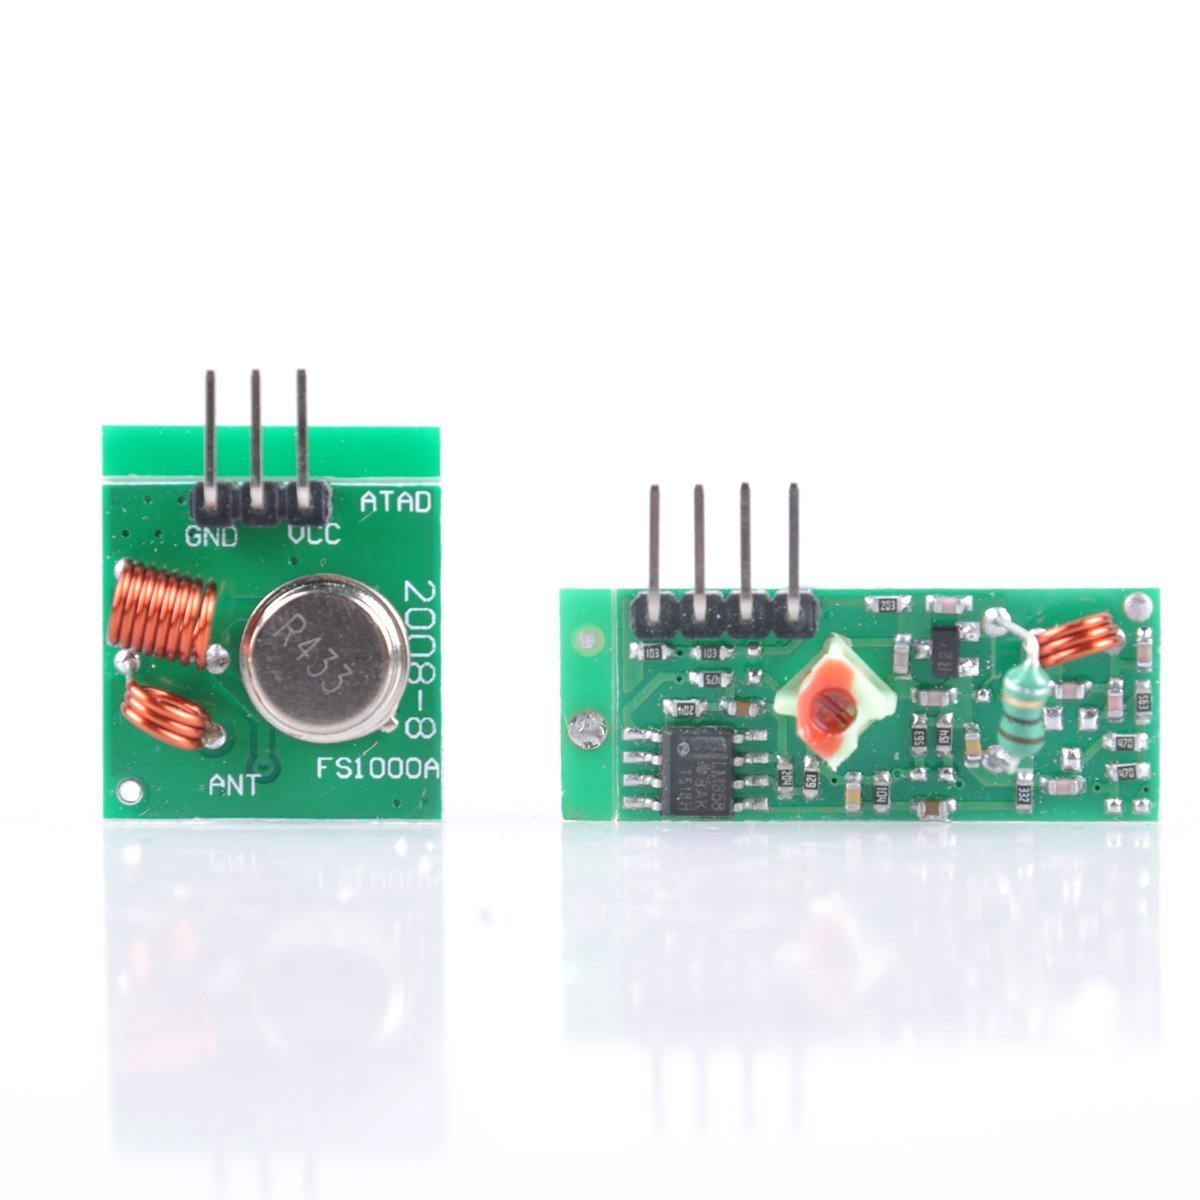 Cheap Rf Transmitter Module 433mhz Find Rf433 Rx This A Simple Which Operates At The Get Quotations Greatwell 1pcs Wireless And Receiver Link Kit For Arduino Diy Arm Mcu